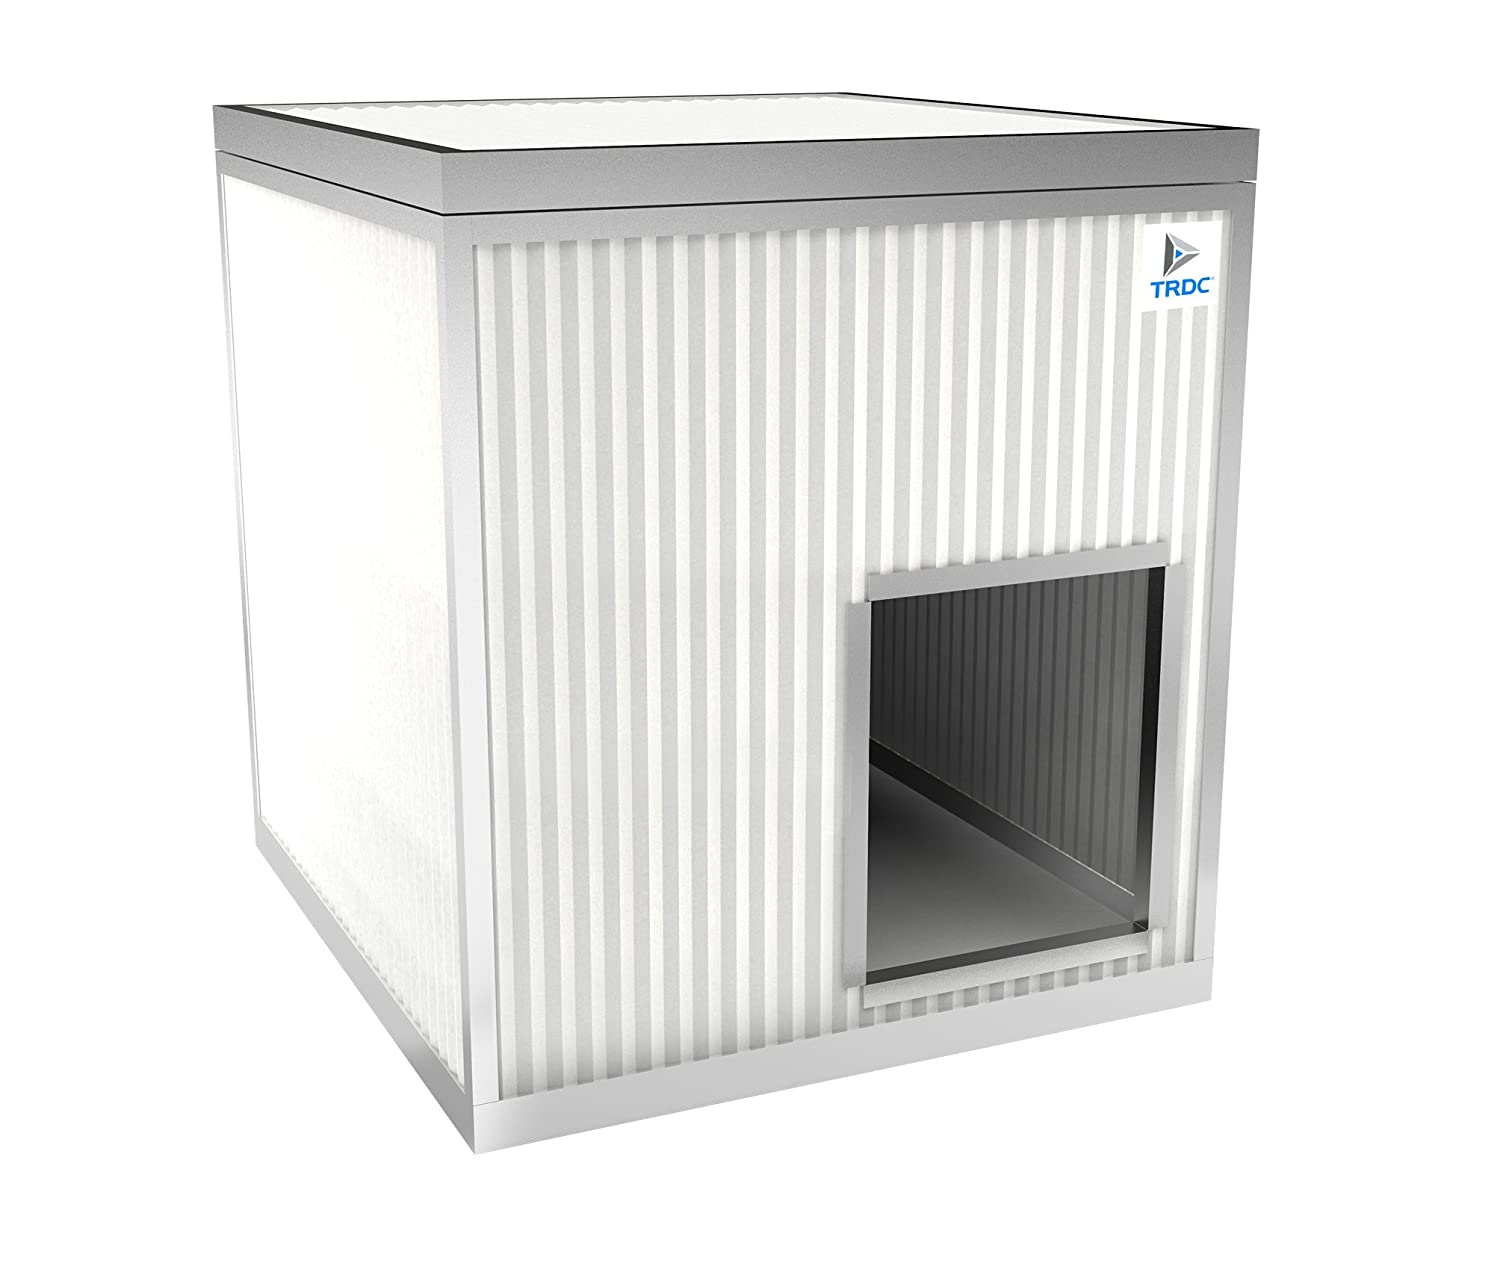 Artic 25 mm TRDC Insulated Dog House XXL kennel for Outdoor (Artic 25 mm)